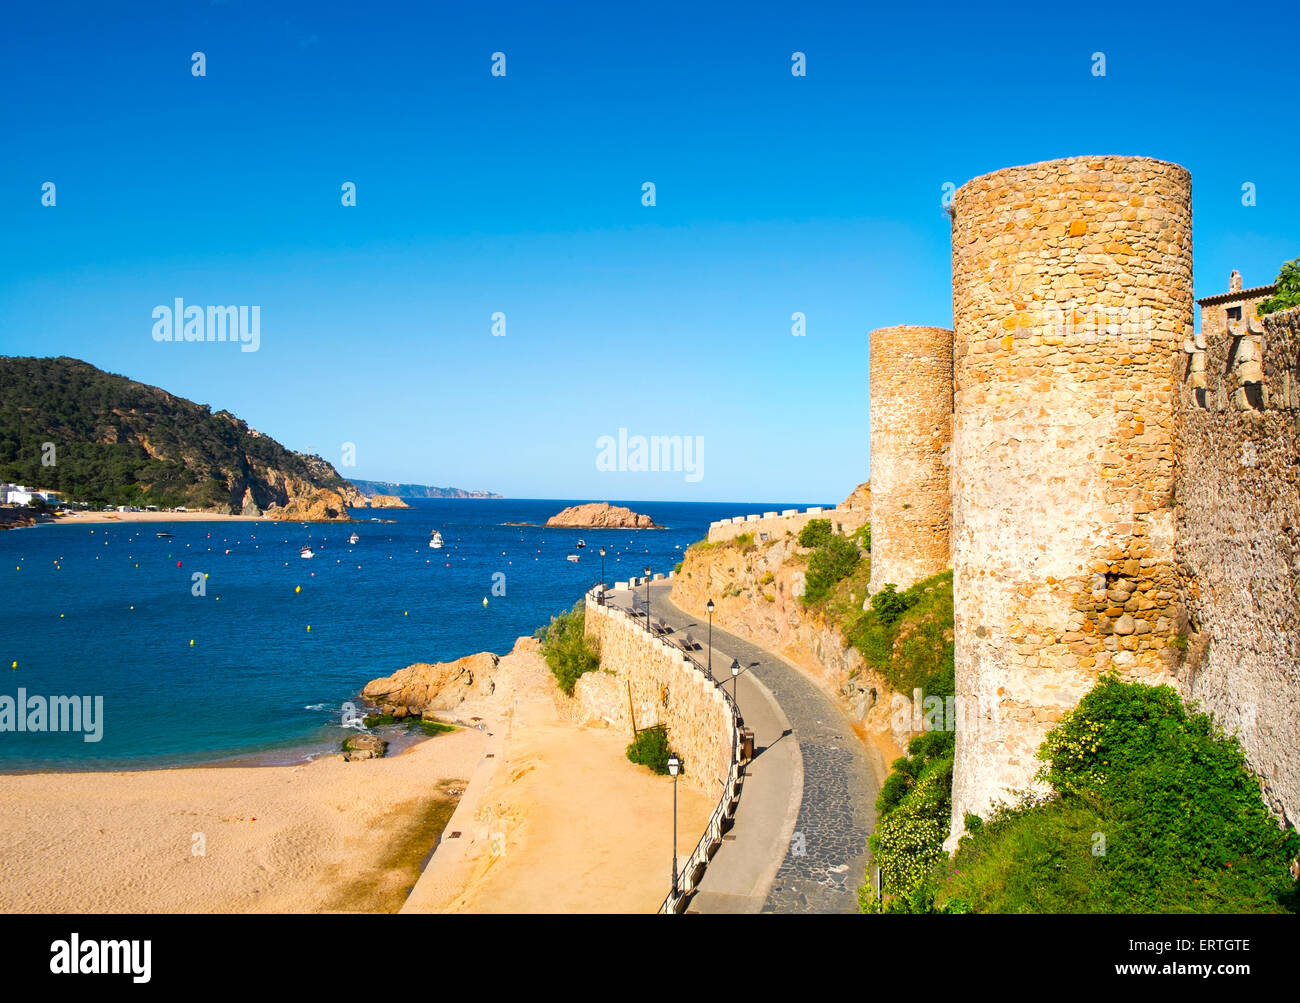 a view of the Platja Gran beach and the walls of the Vila Vella, the old town, of Tossa de Mar, Spain - Stock Image